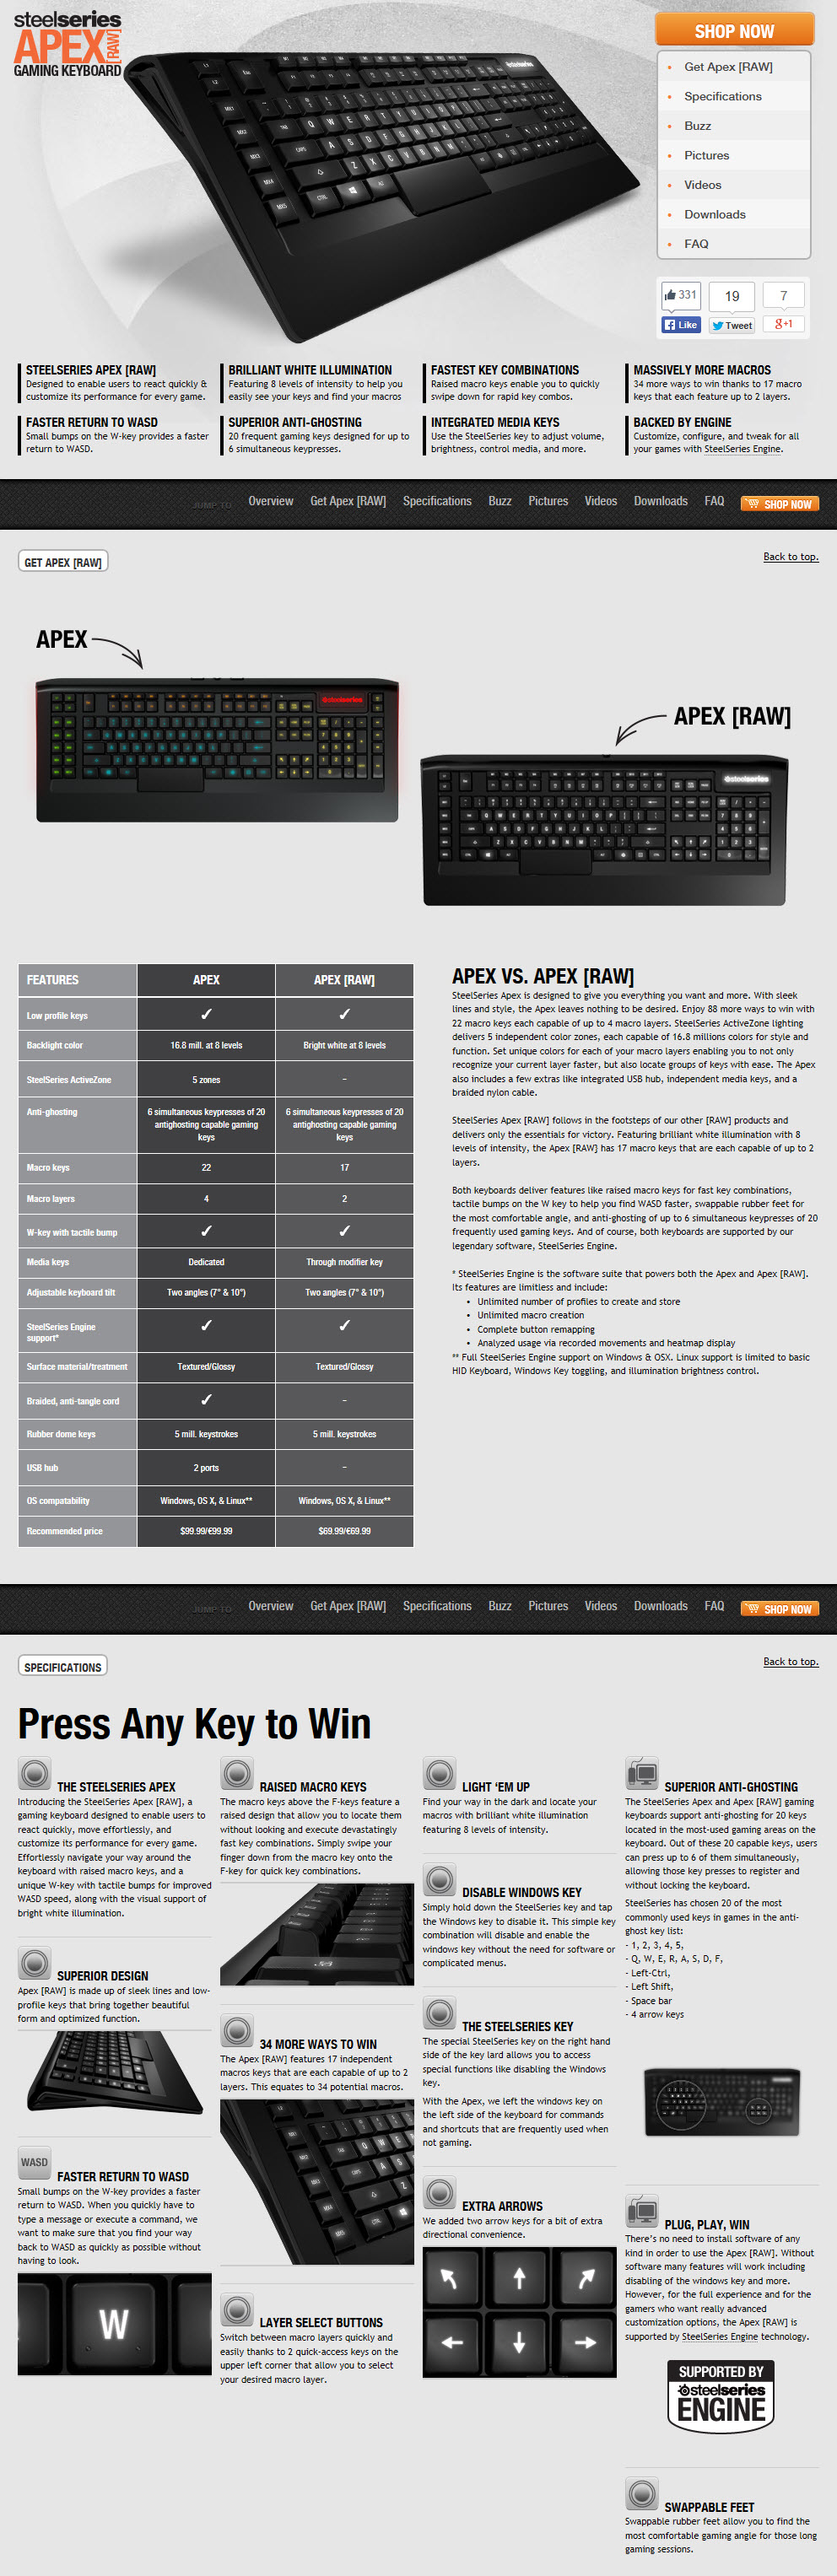 1 9 2014 12 26 36 am SteelSeries APEX RAW Gaming Keyboard Review